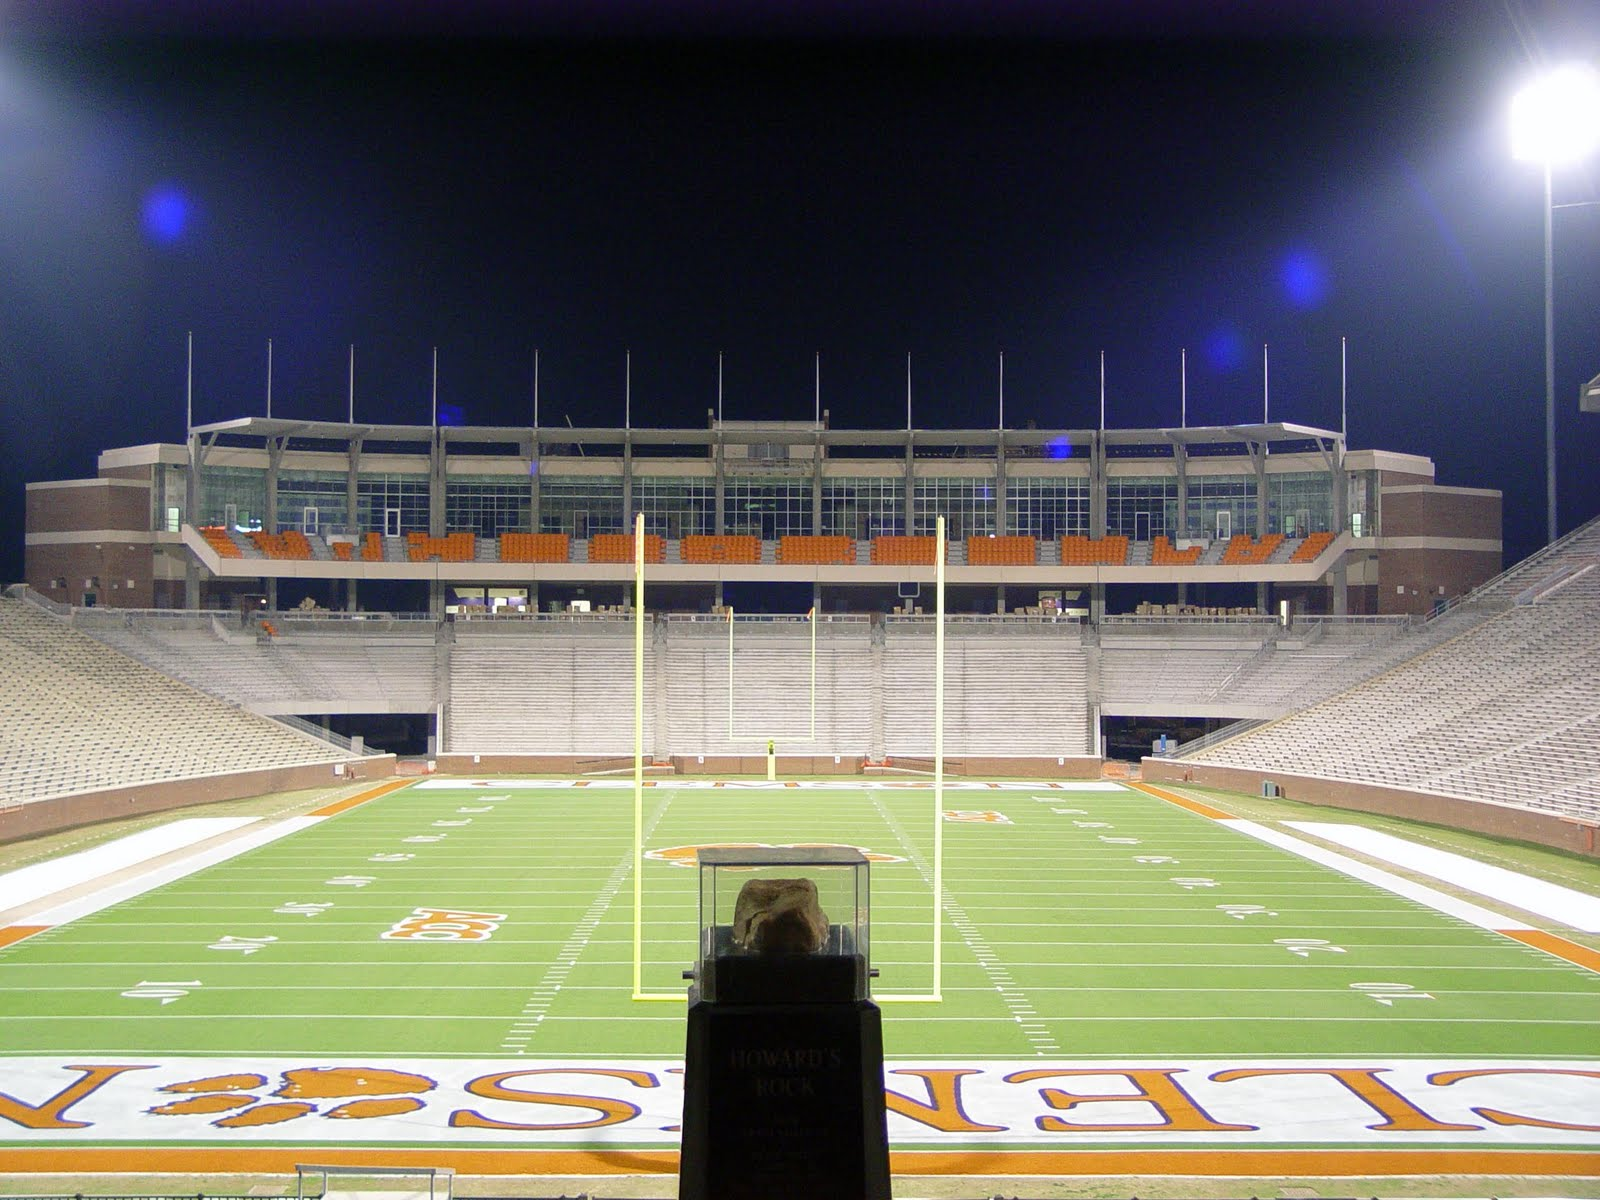 West End Zone Construction Photos - Death Valley